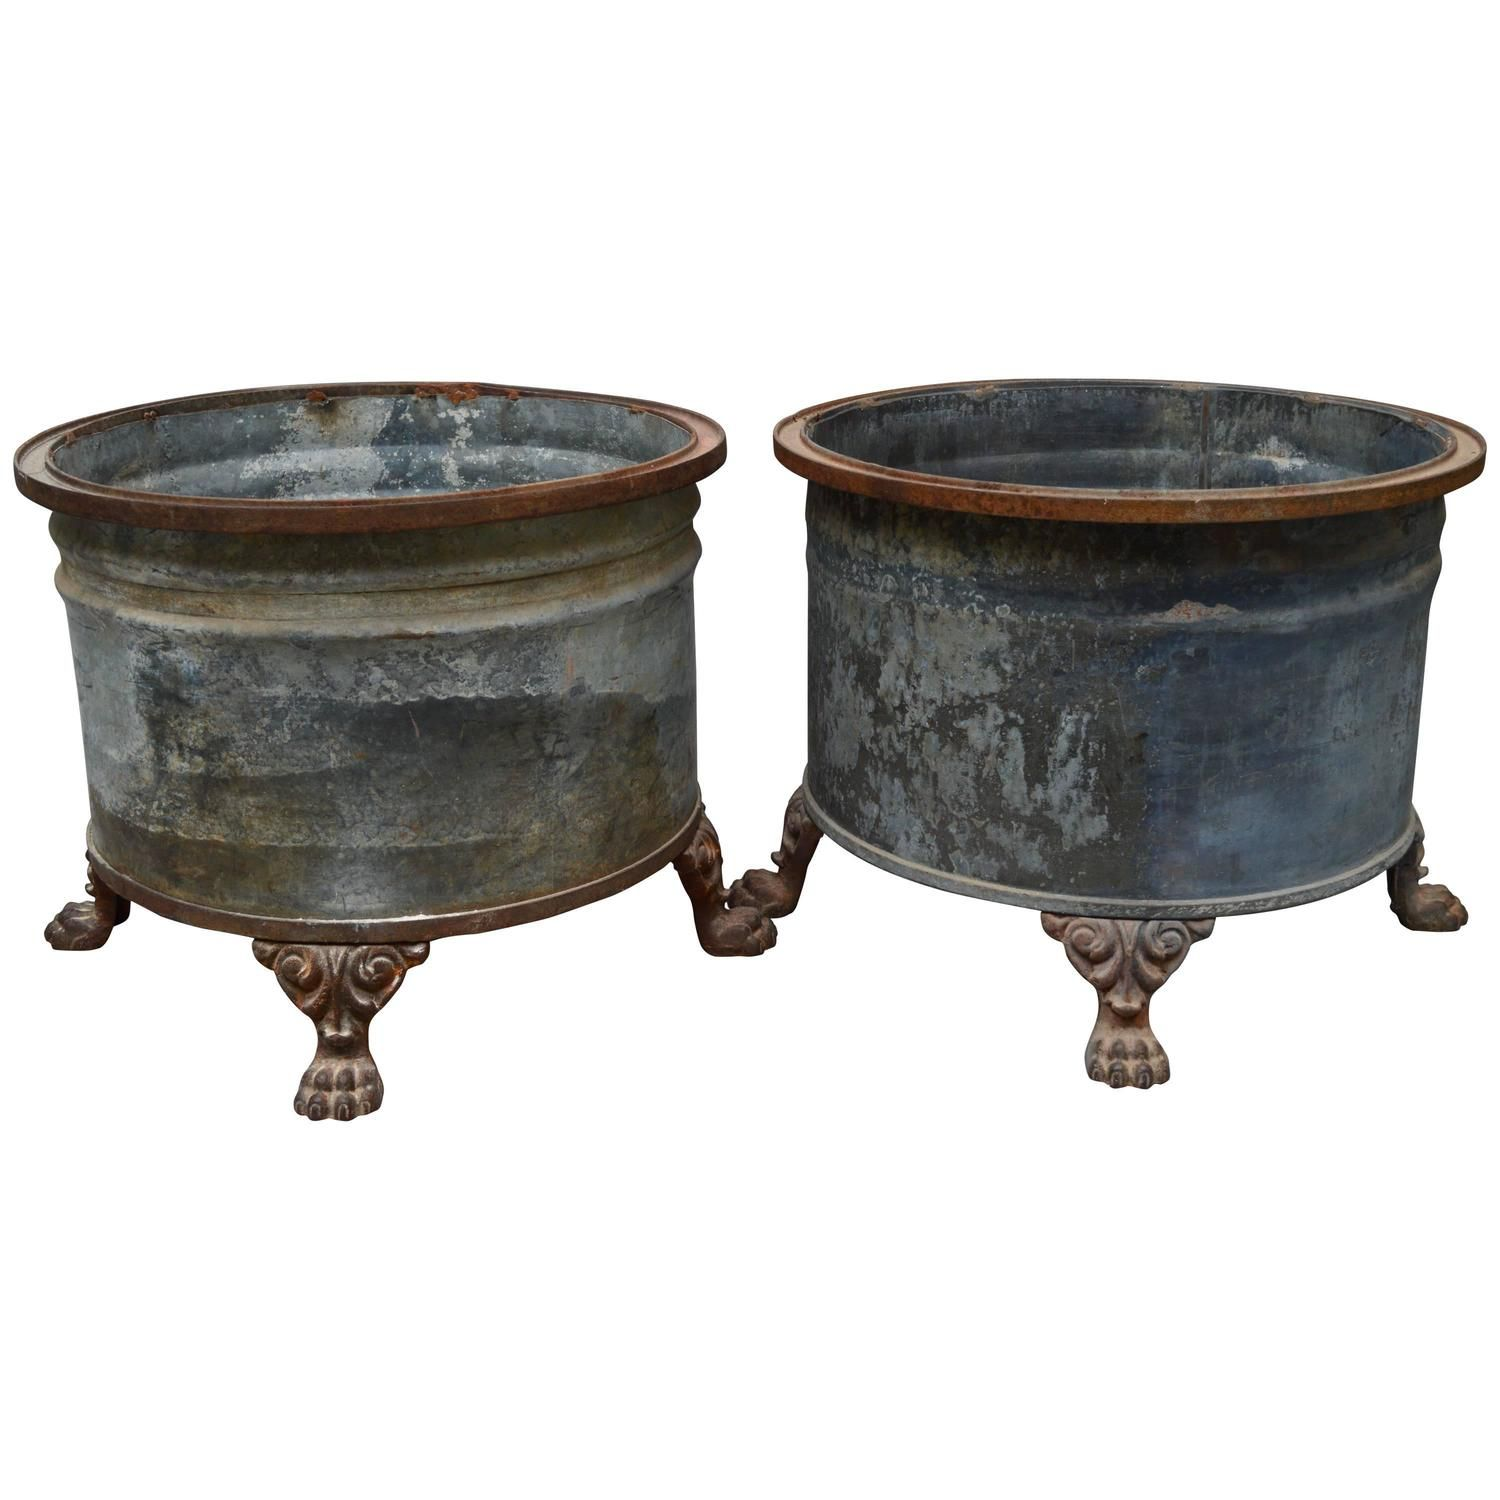 vintage small metal planter supported by four lion paw legs.